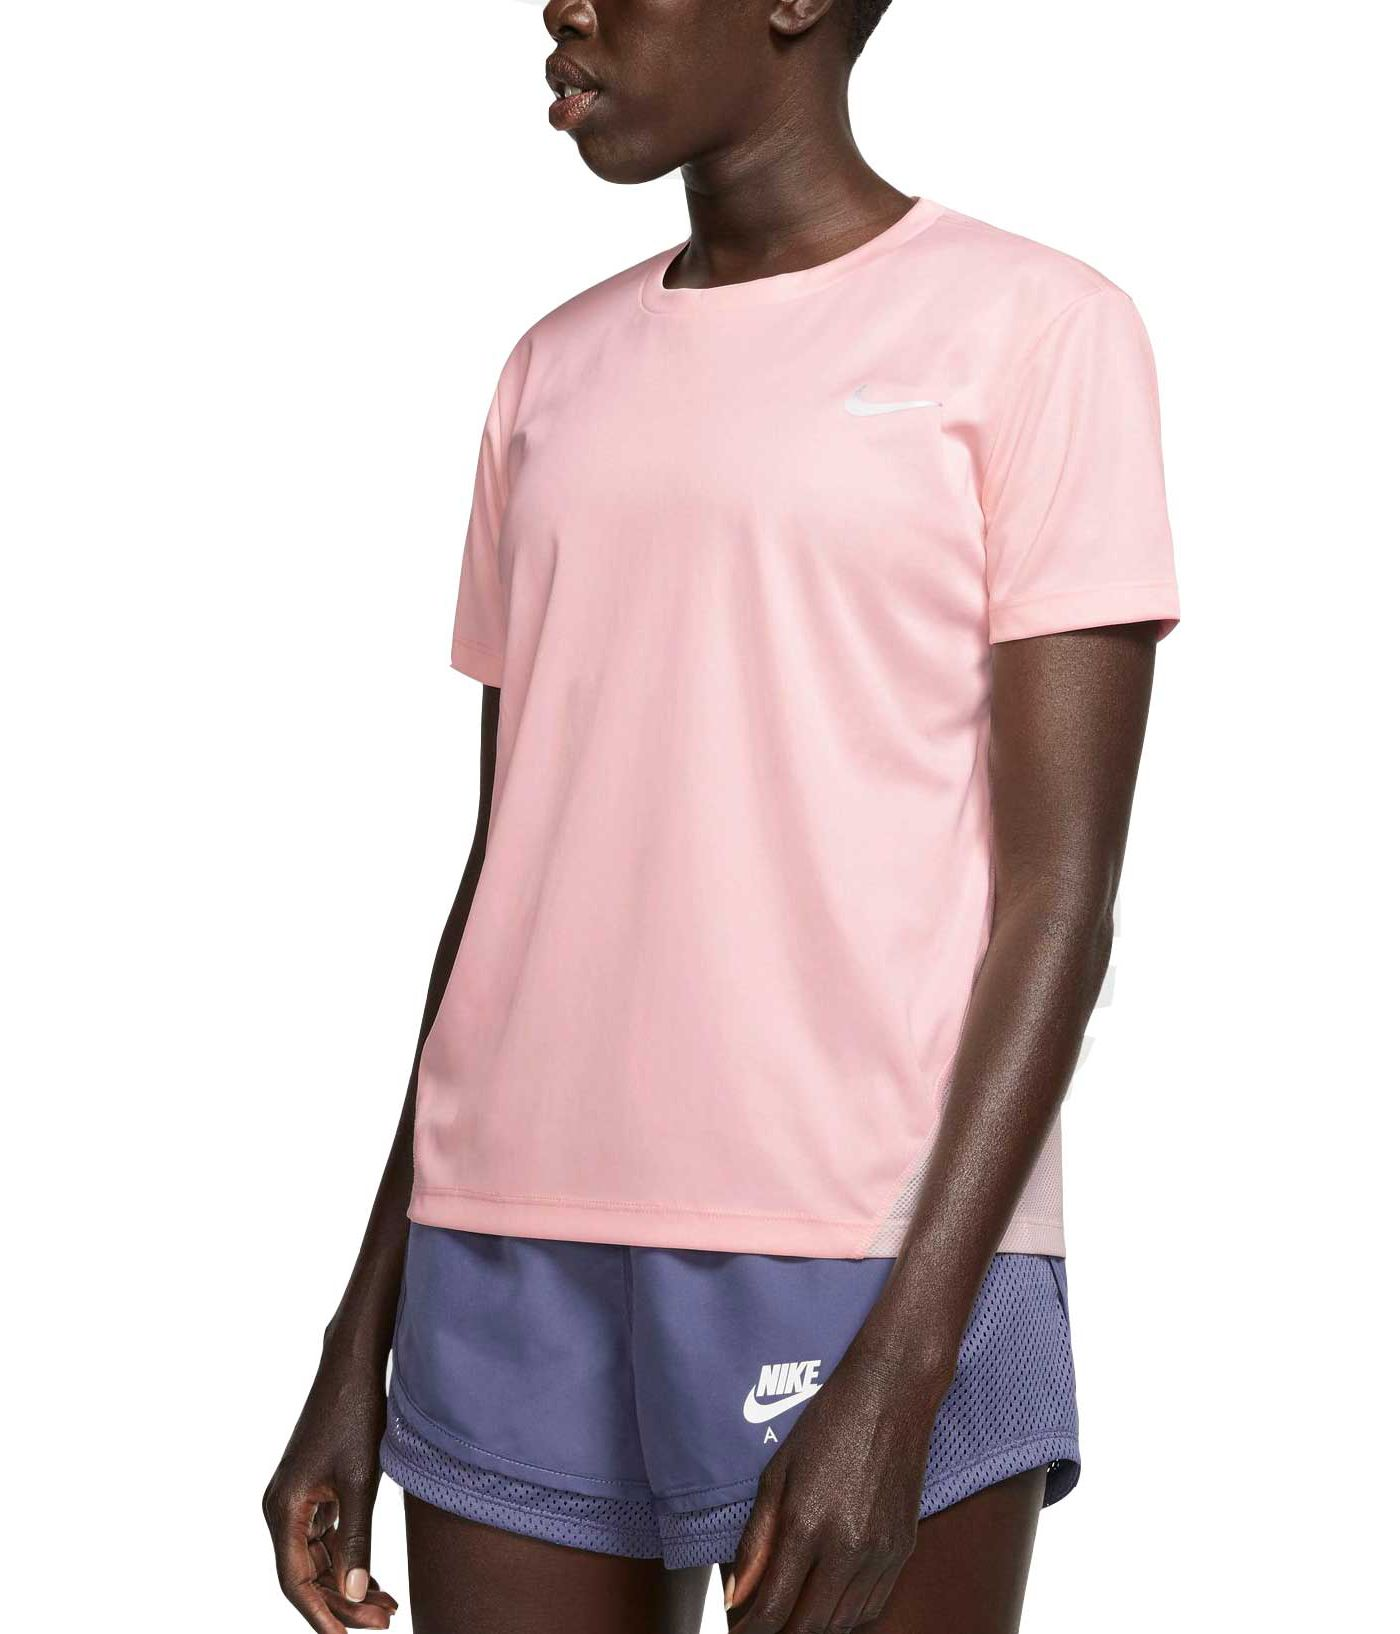 Nike Women's Miler Short Sleeve Running Top